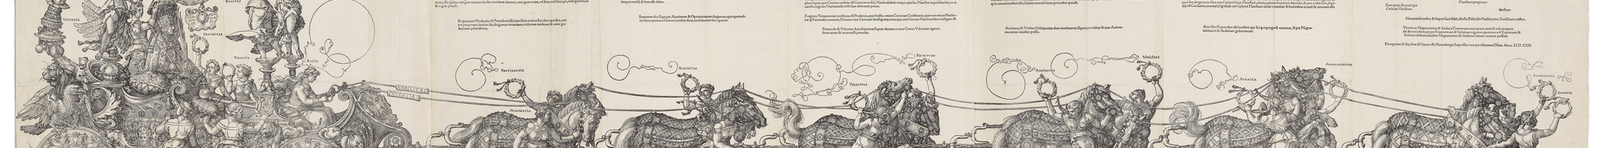 A woodcut showing the Emperor Maximilian in a triumphal chariot.<br /><br />This large woodcut, over 2 metres in length, was originally planned as part of a huge printed frieze. The work, undertaken by a team of designers and woodblock cutters, was to sho